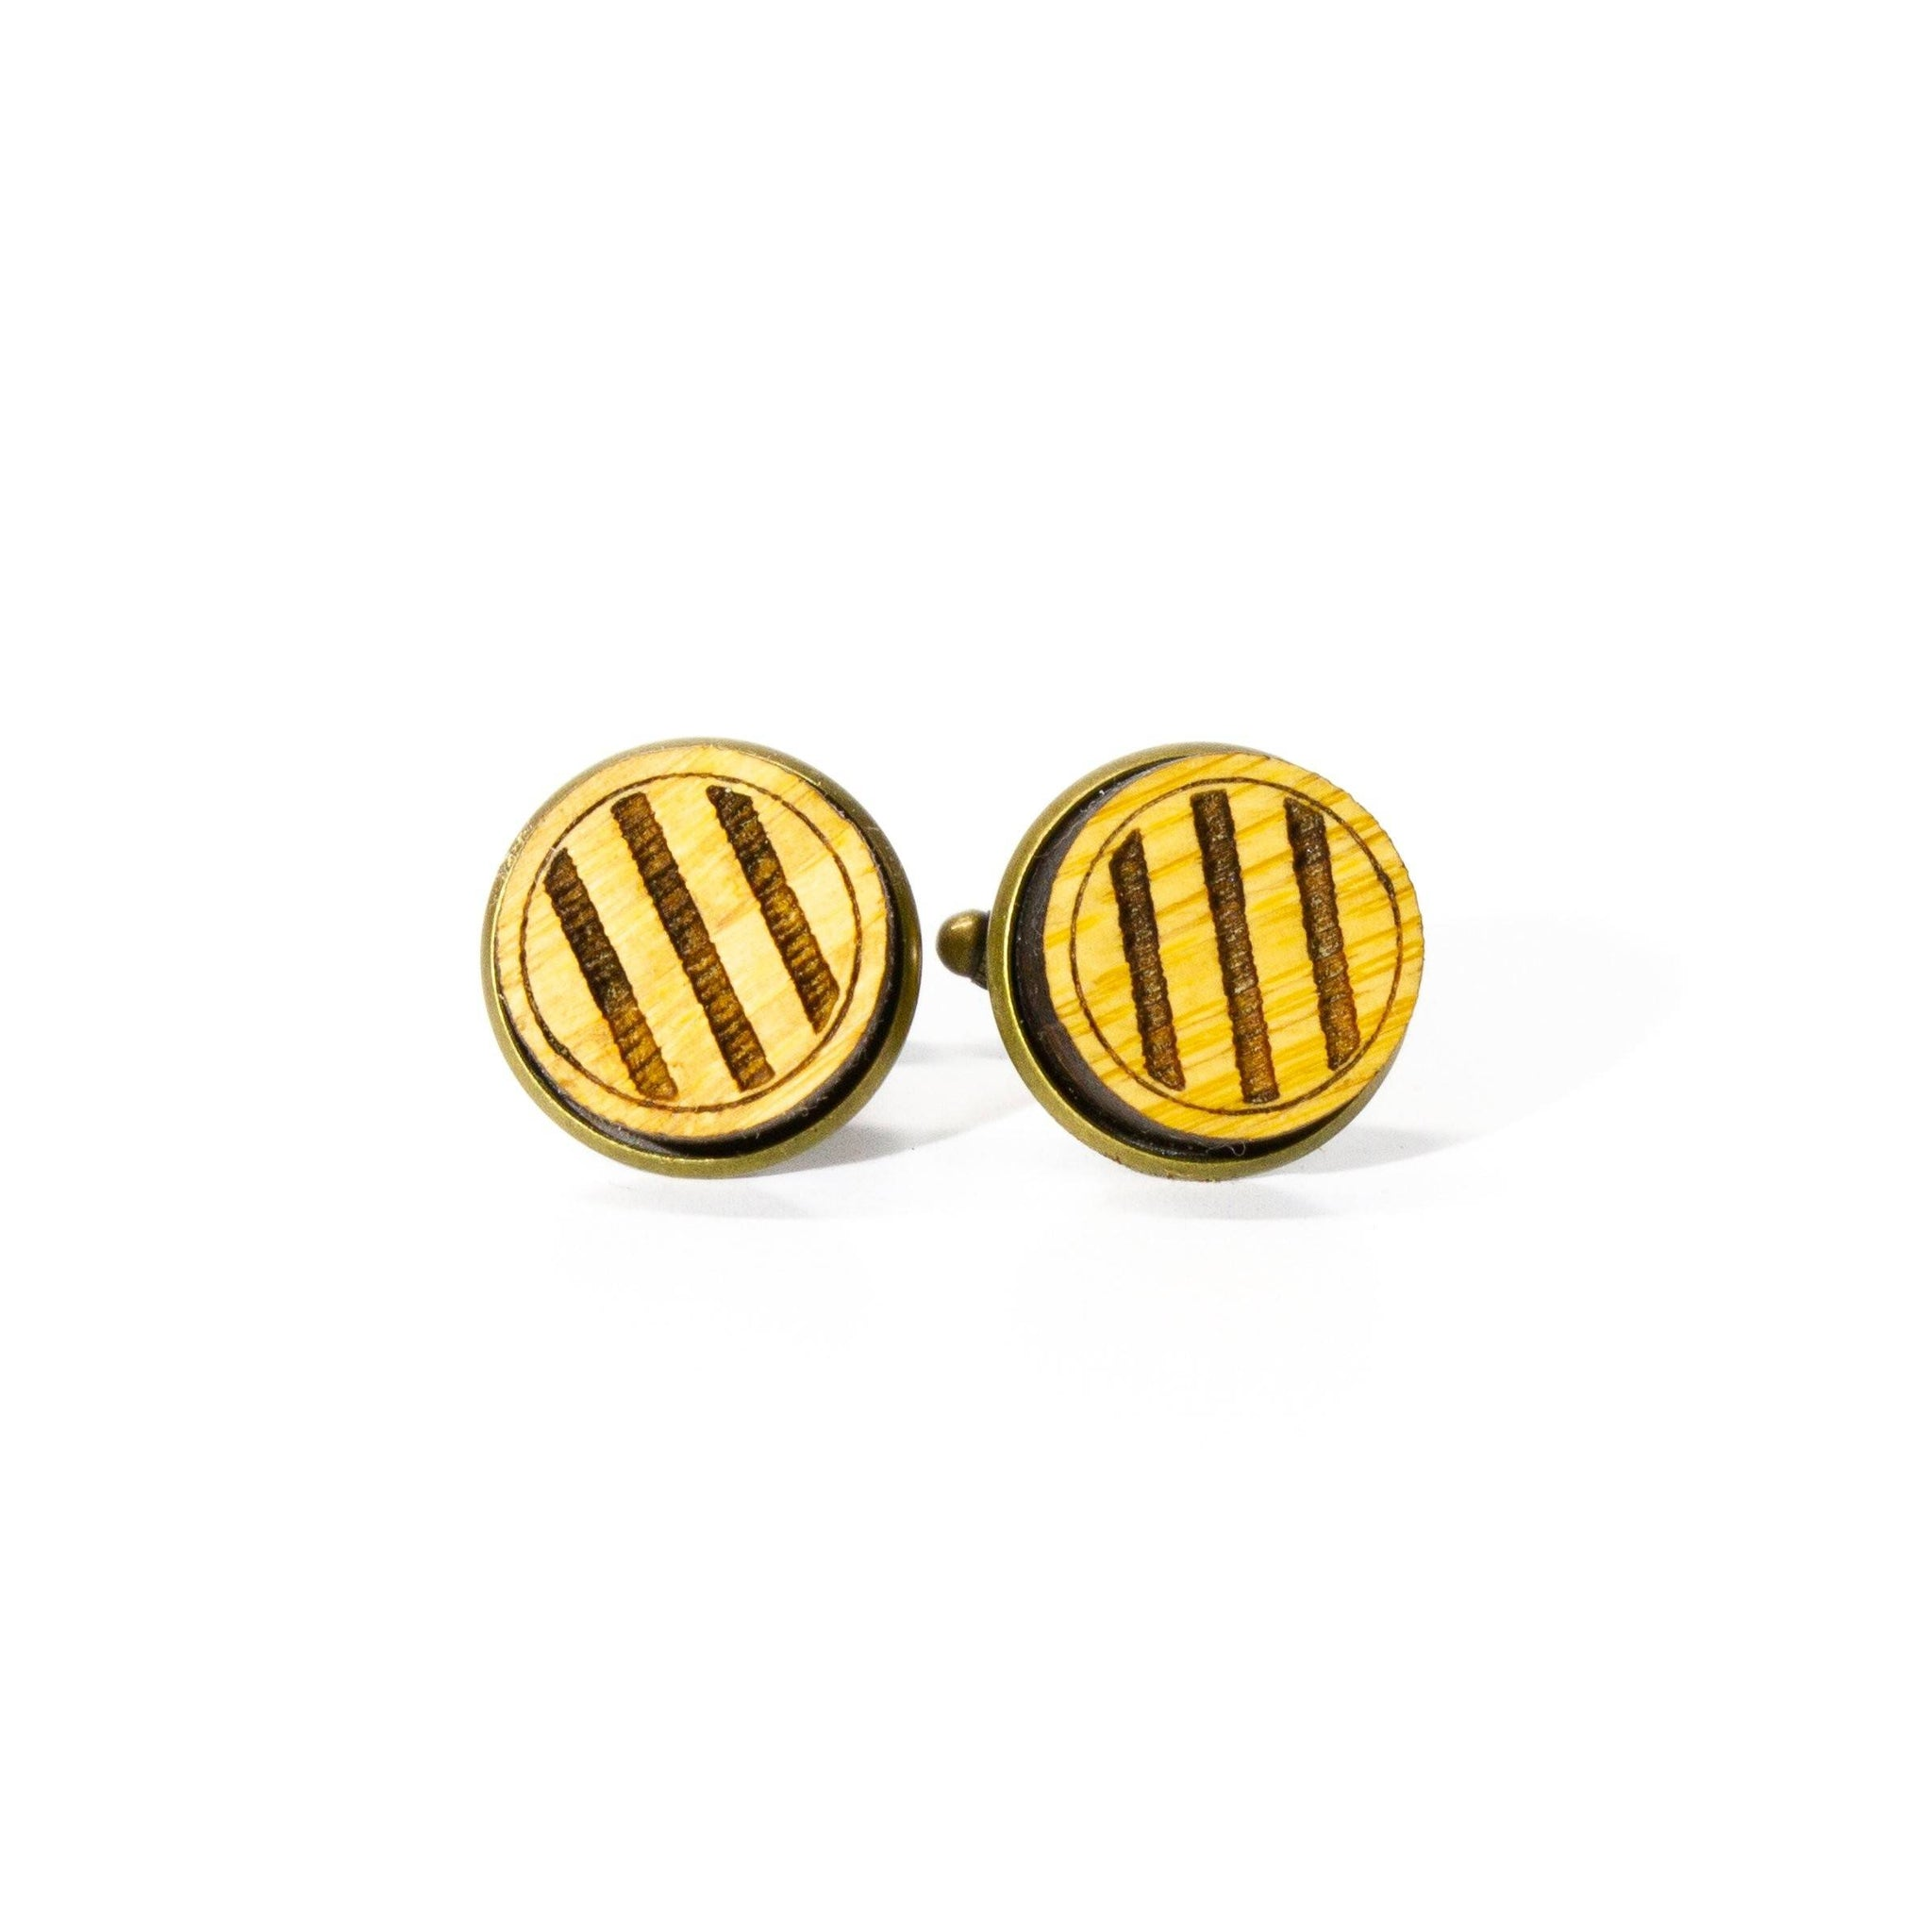 Stripes: Bamboo Cufflinks - Square